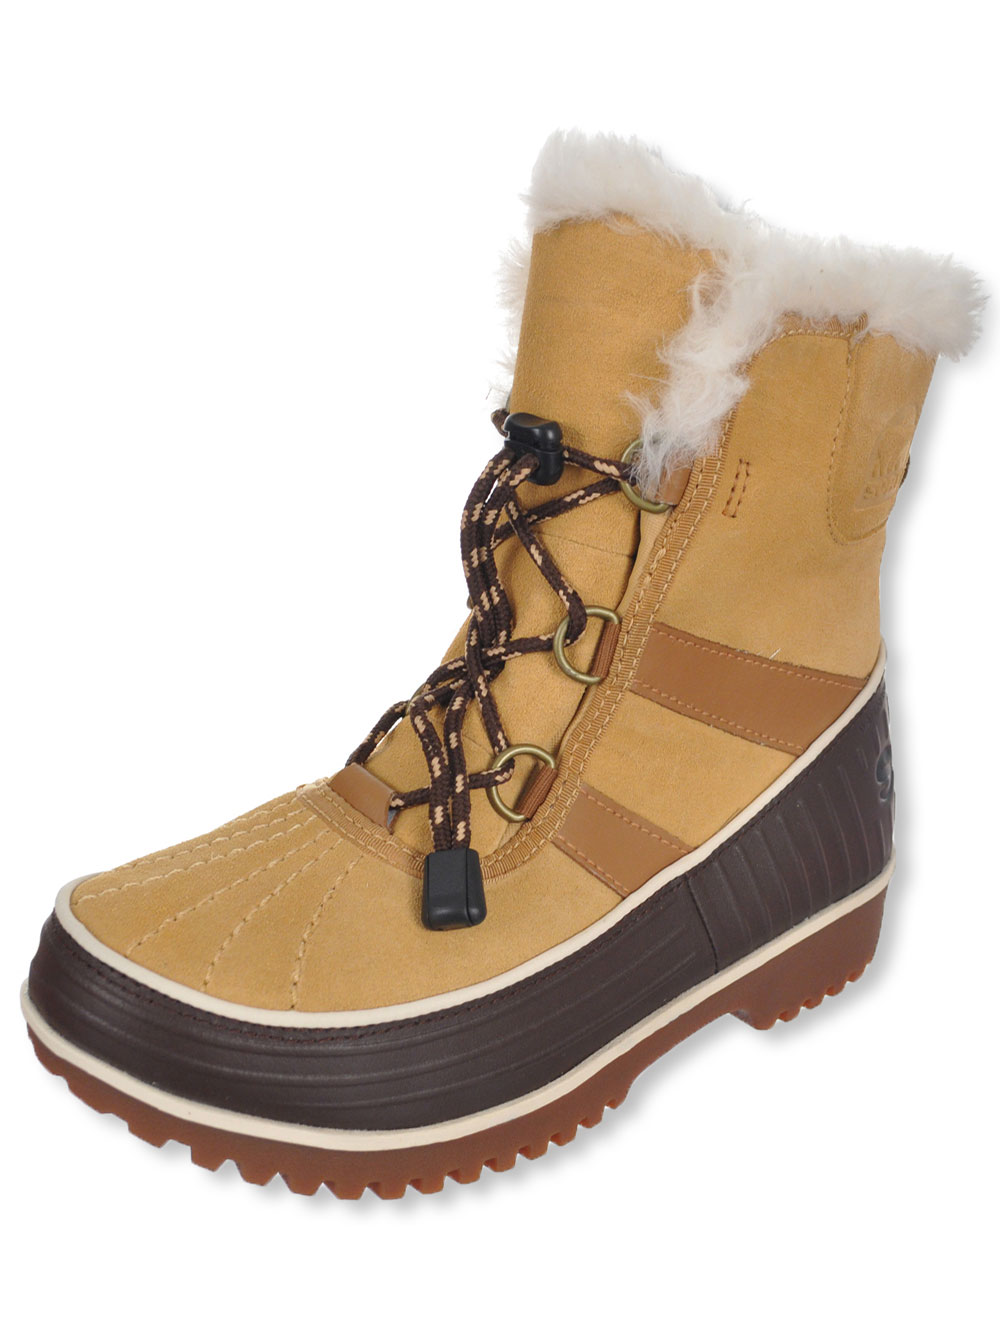 Girls' Fur-Lined Boots